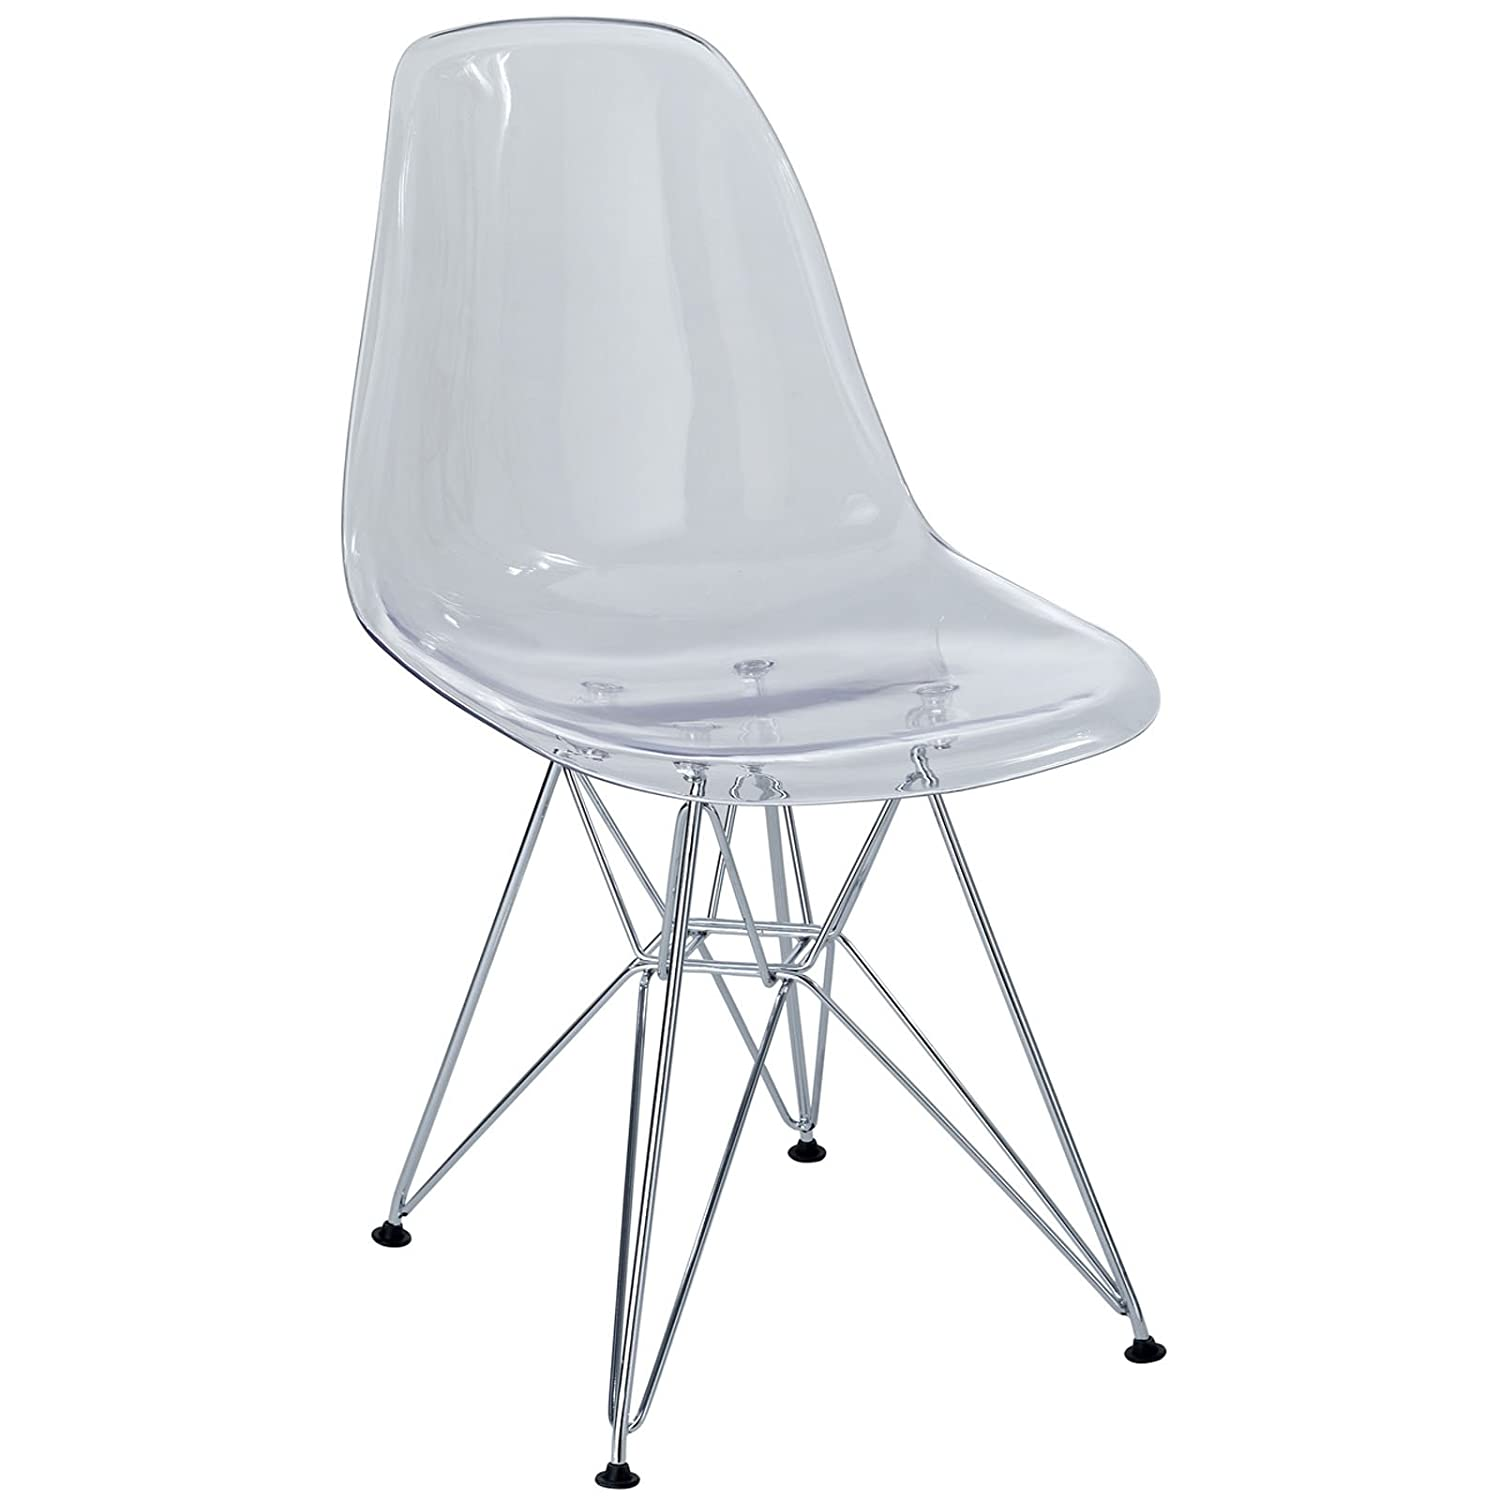 clear plastic furniture. Amazon.com - Modway Paris Mid-Century Modern Side Chair With Steel Metal Base In Clear Chairs Plastic Furniture